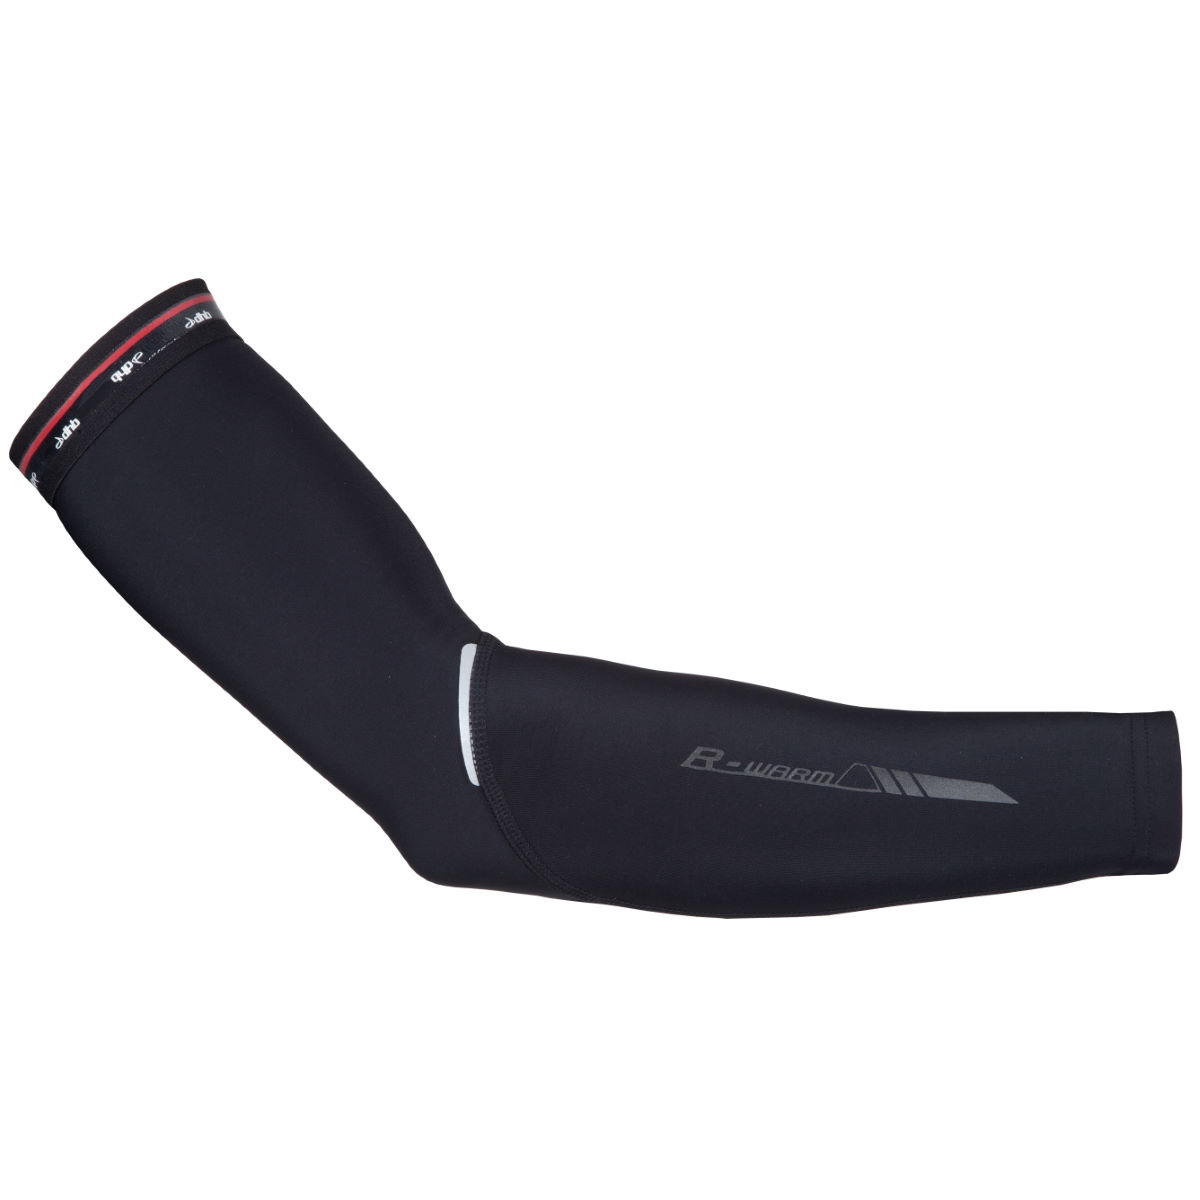 dhb Regulate Warm Arm Warmers   Arm & Leg Warmers